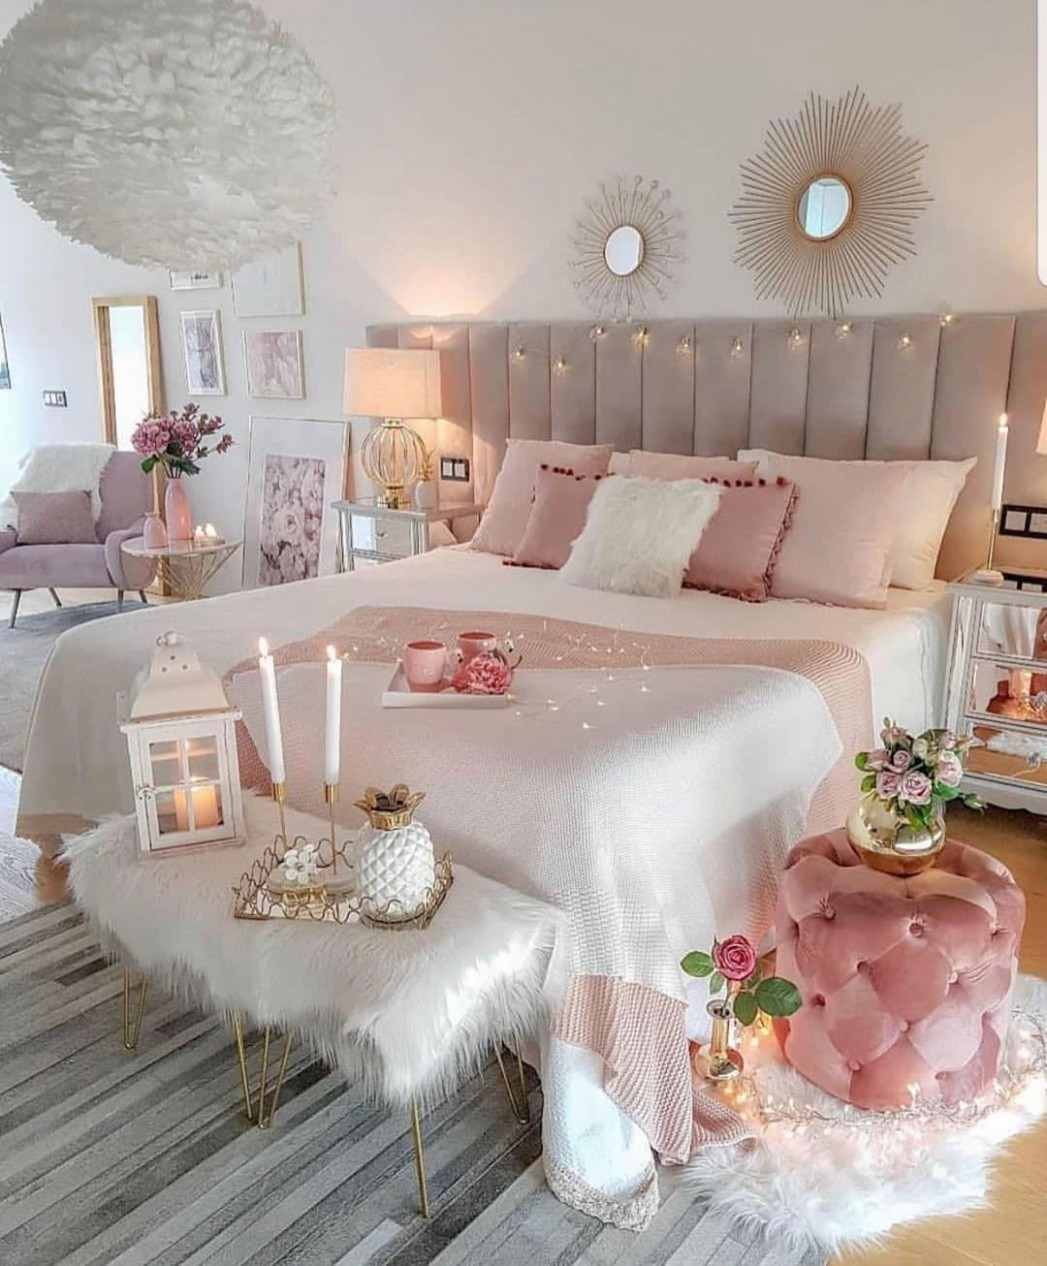 Pin on Bedrooms & Sitting Rooms - Bedroom Ideas On Instagram